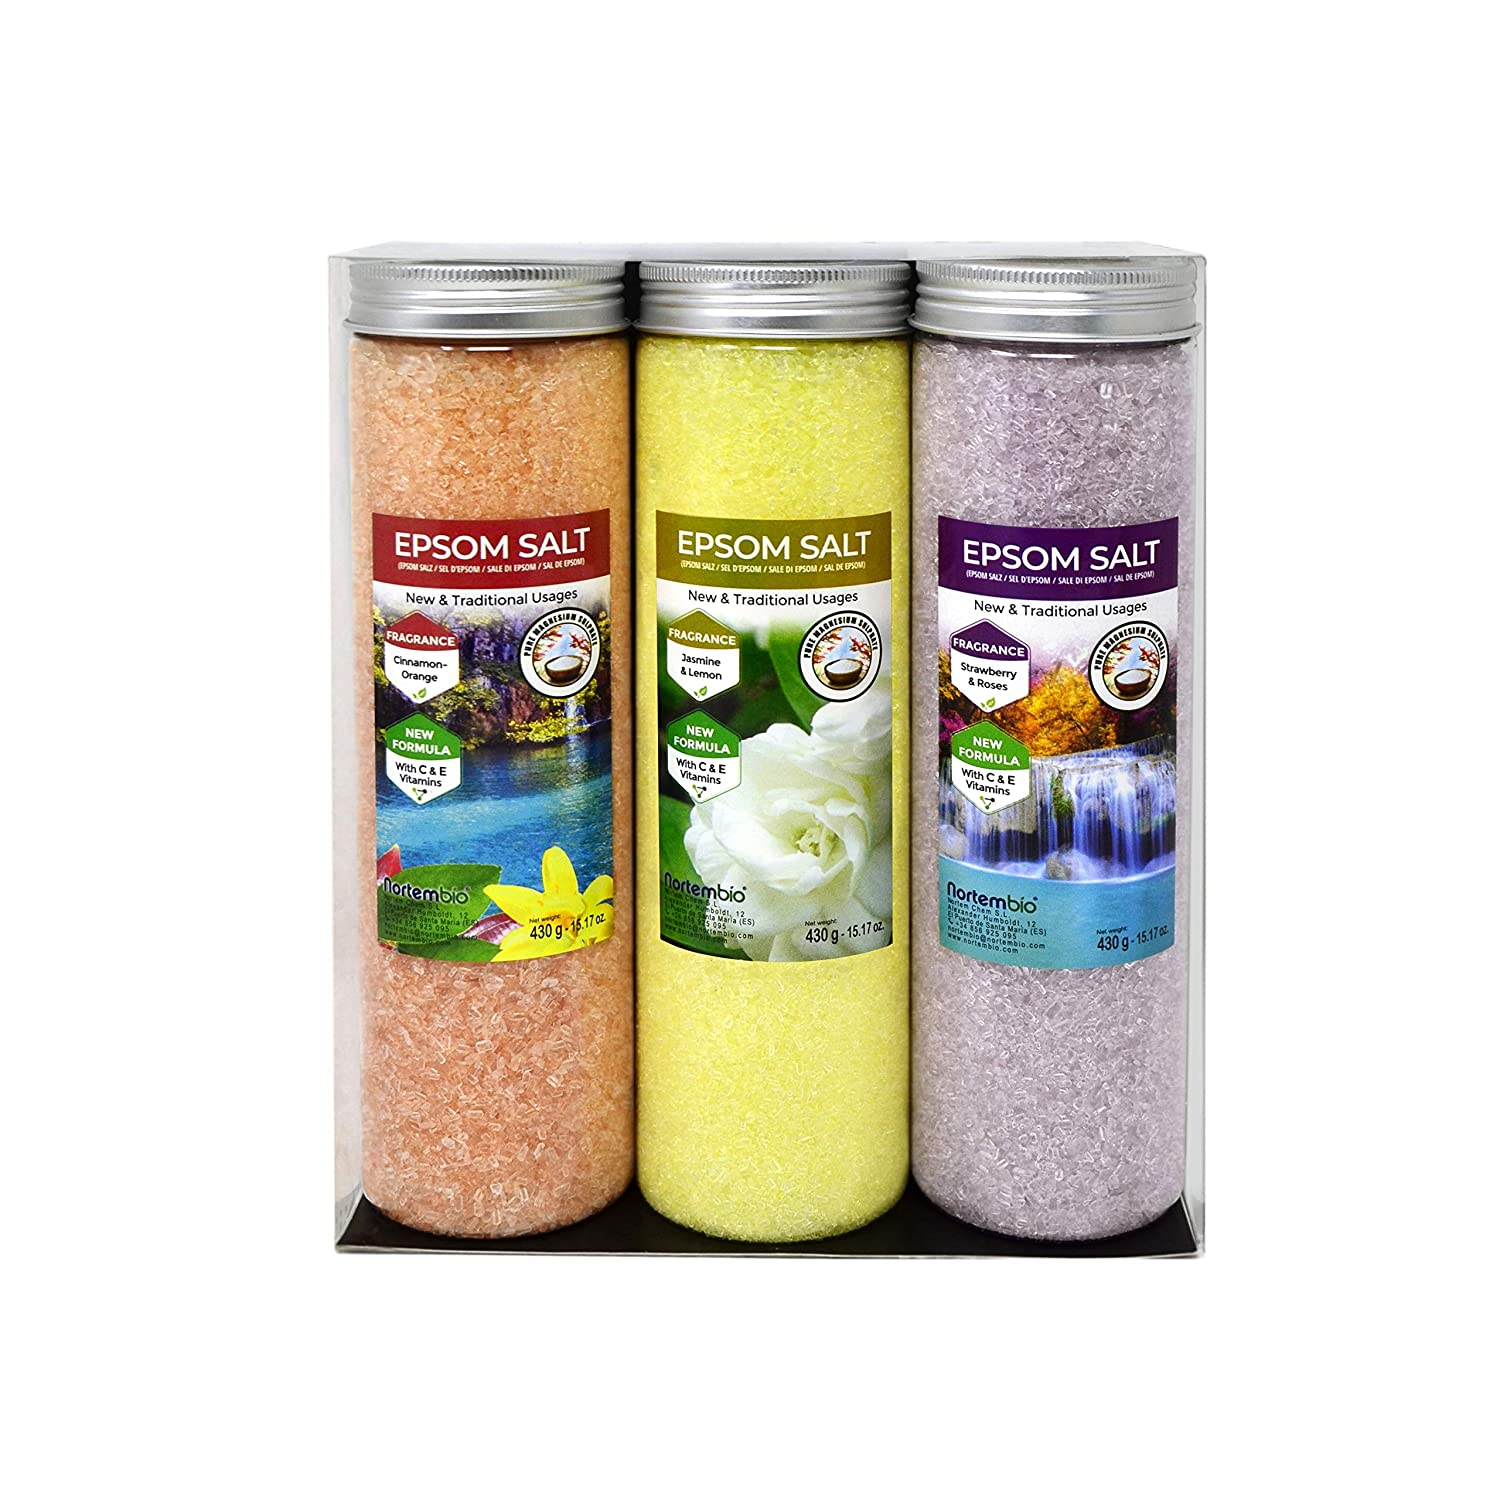 NortemBio Epsom Salt Pack 3 x 430 g. Cinnamon, Jasmine, Roses Fragrances. Hydrated with Vitamin C and E. Bath Salts, Aromatherapy, Flotation Therapies. Nortem Biotechnology